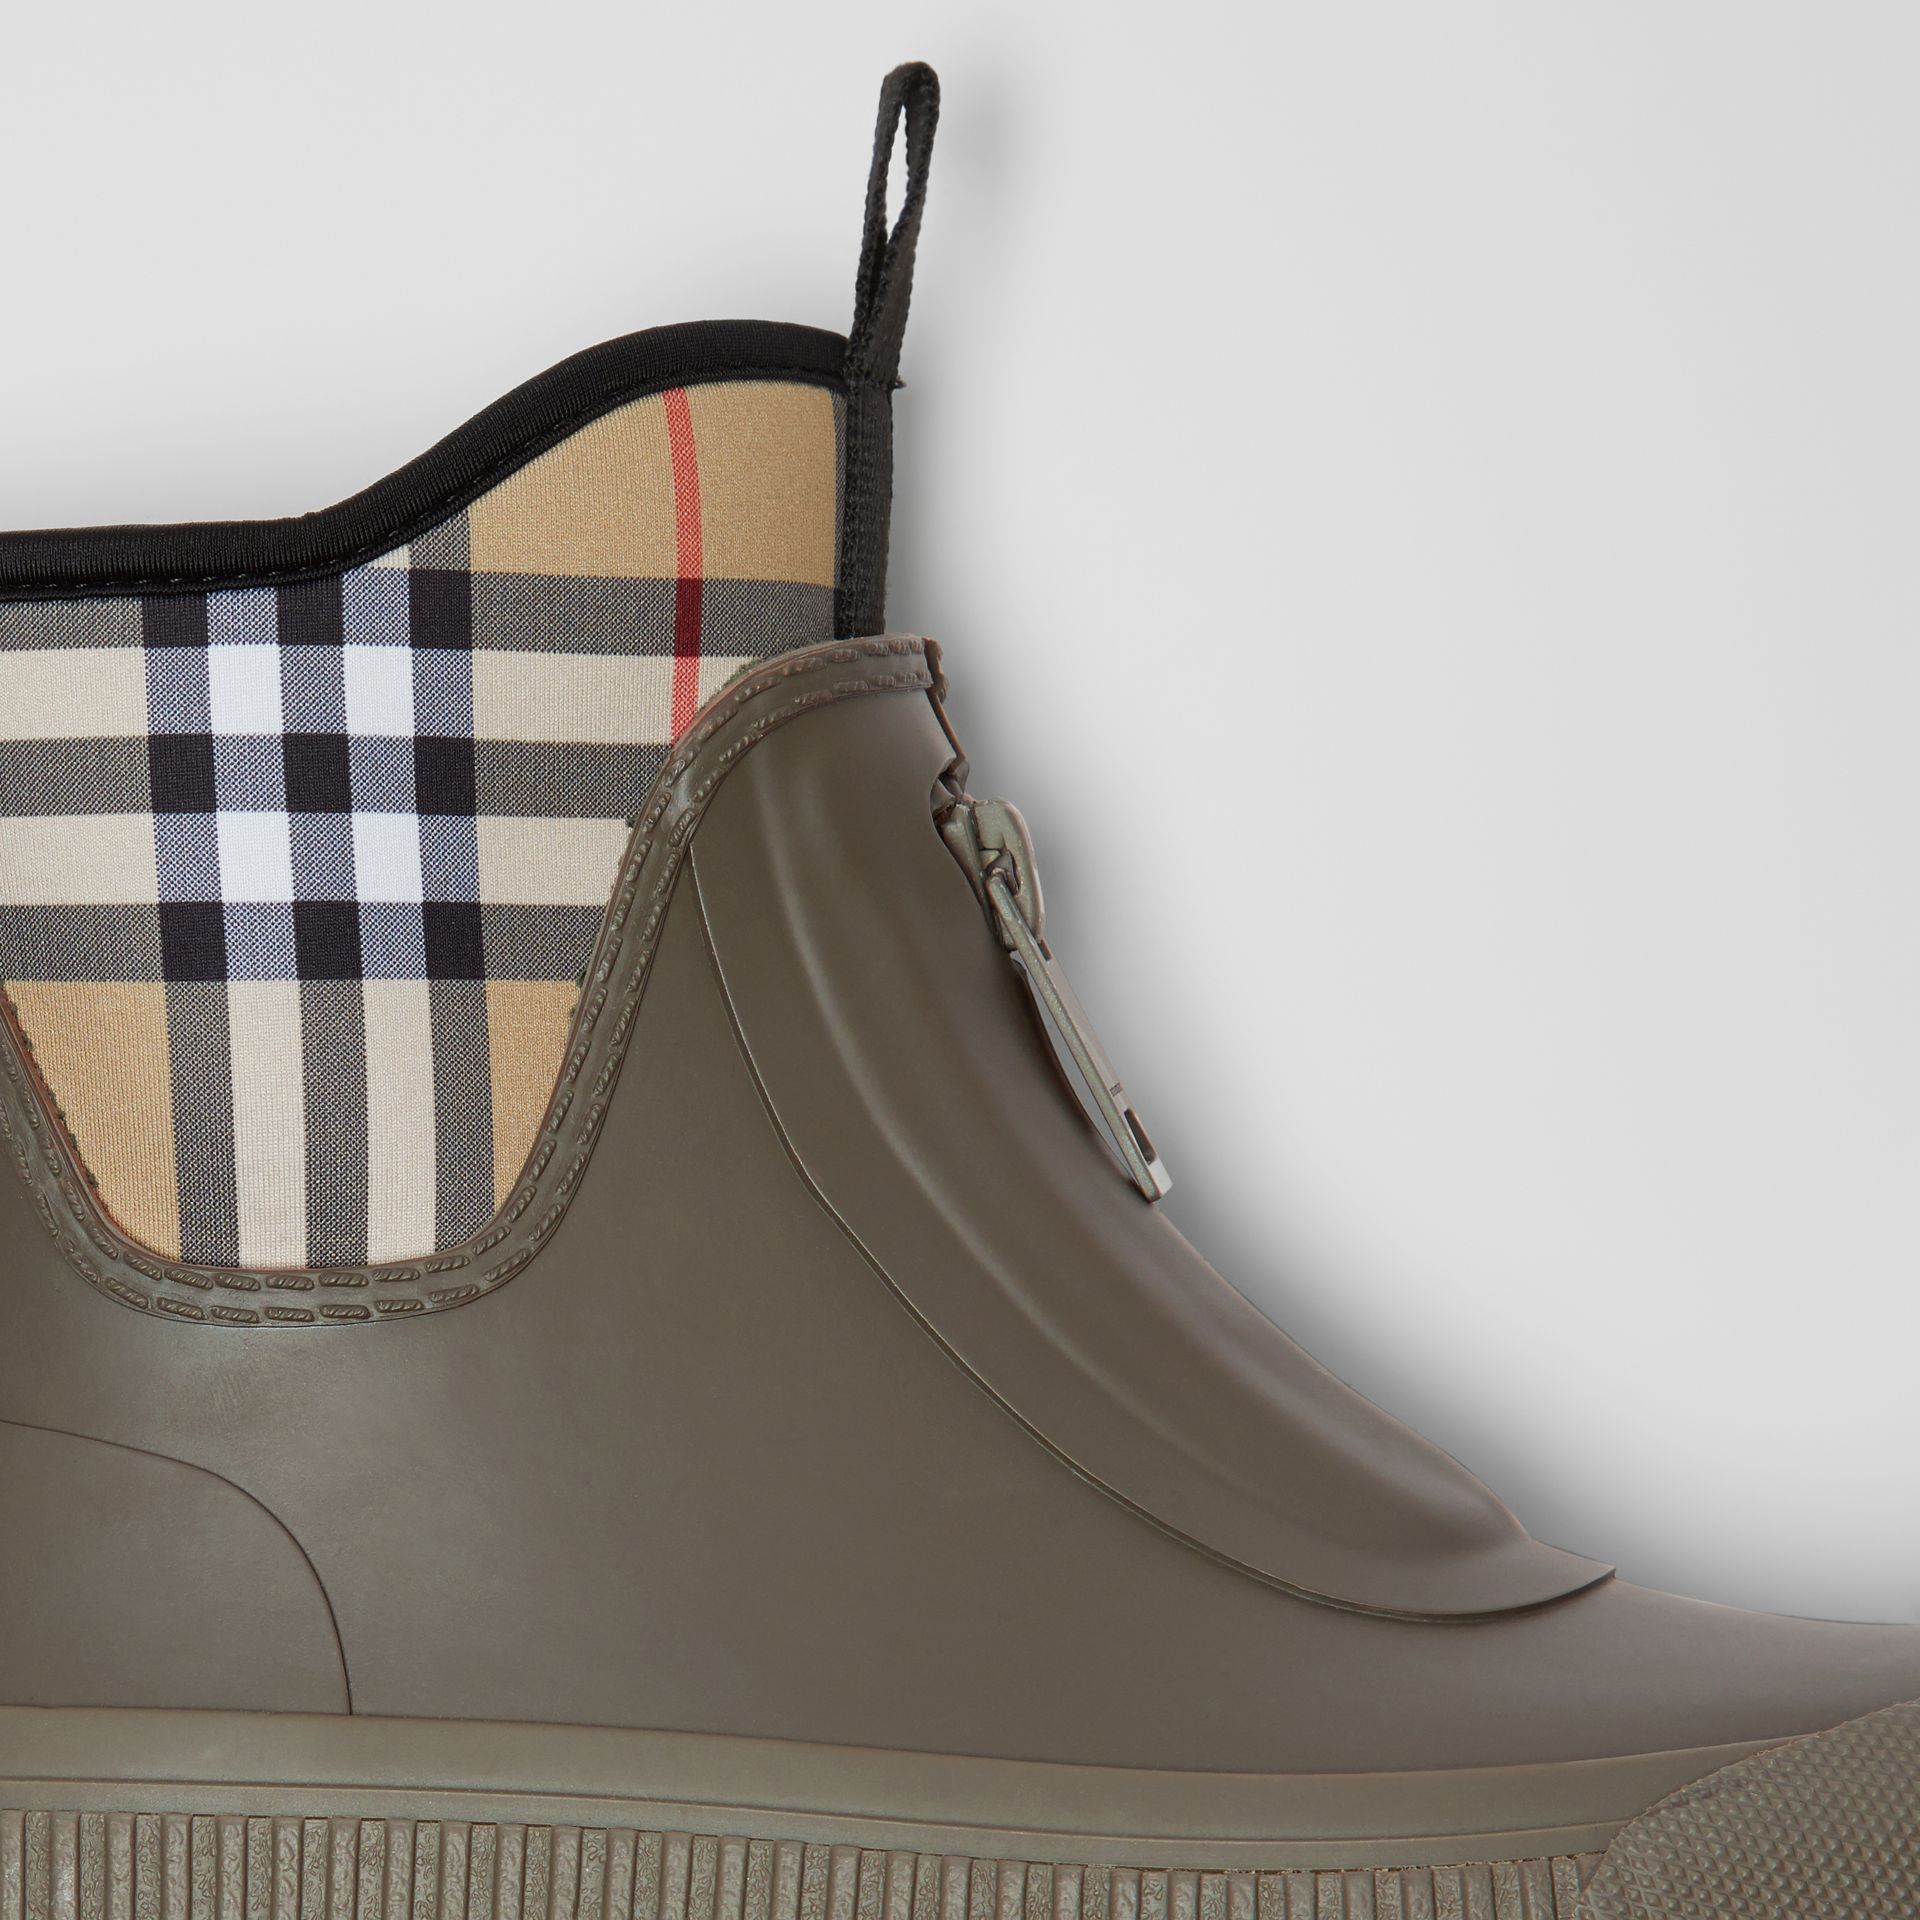 Vintage Check Neoprene and Rubber Rain Boots in Military Green - Women | Burberry - gallery image 1